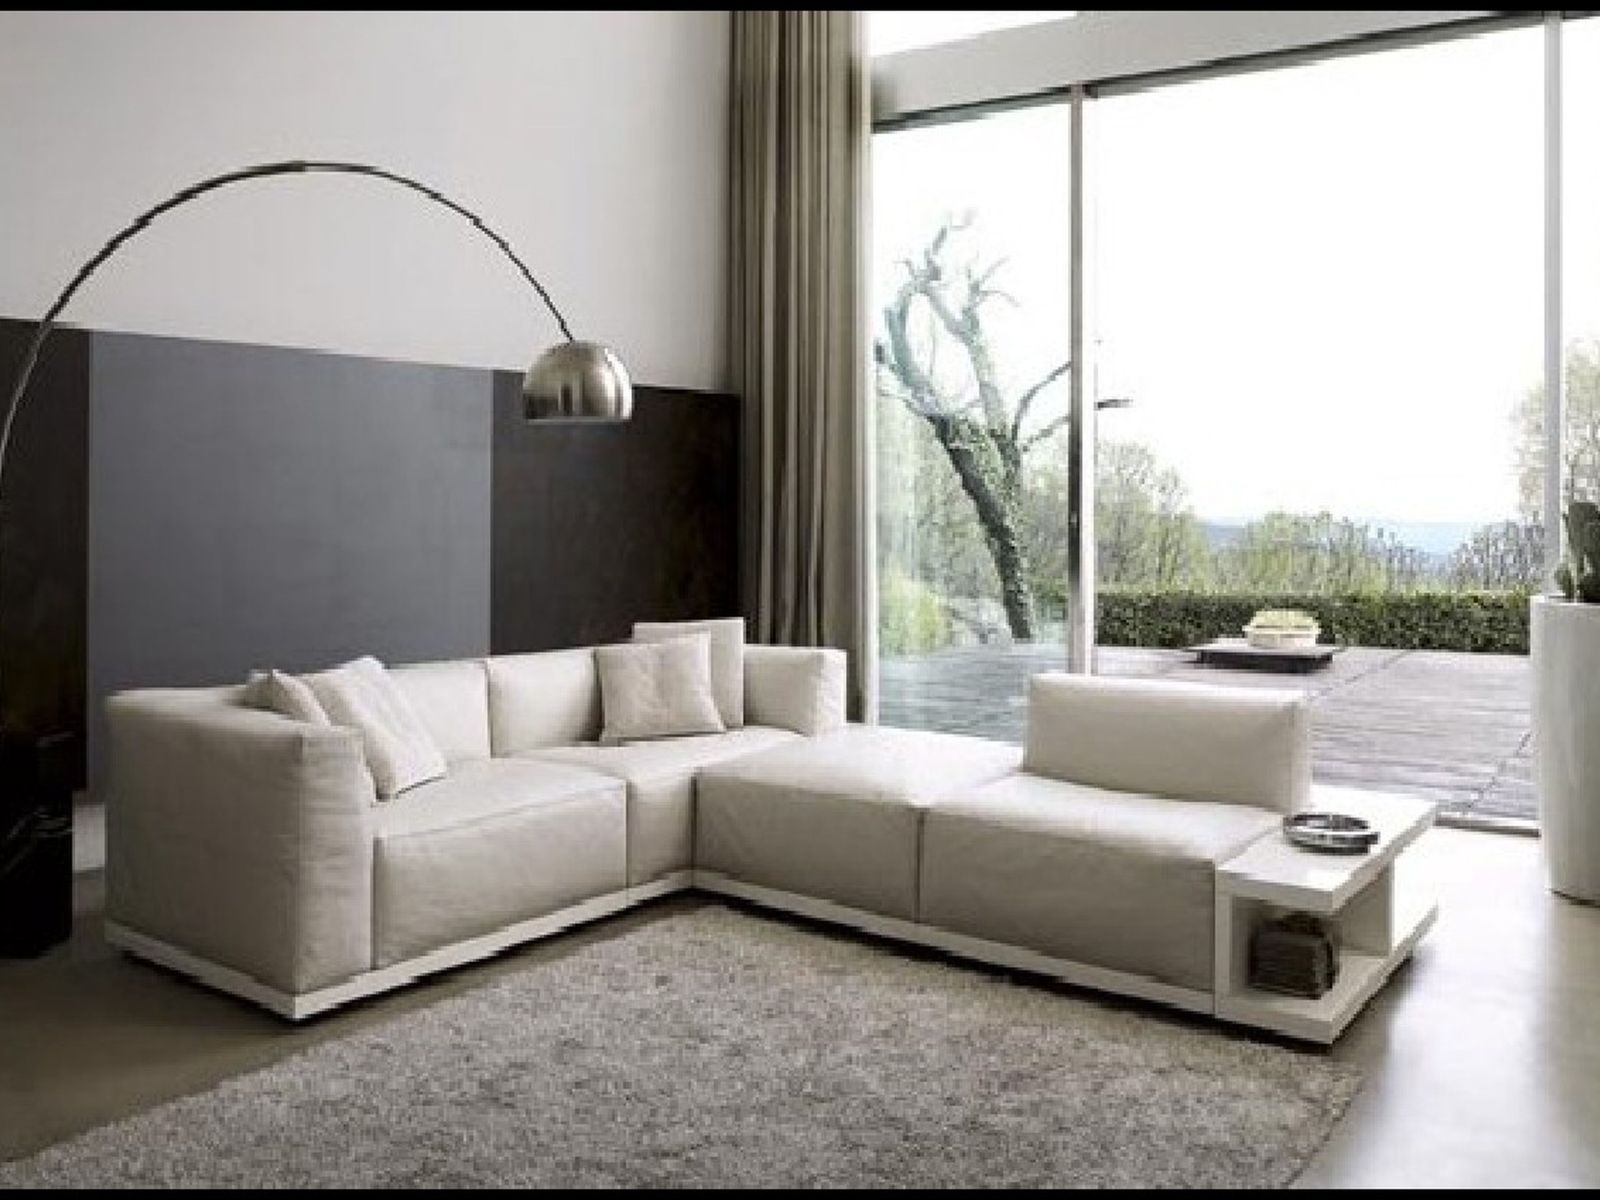 ▻ Sofa : 29 Elegant Sectional Sofa With Talsma Furniture And For Grand Rapids Mi Sectional Sofas (Image 1 of 10)